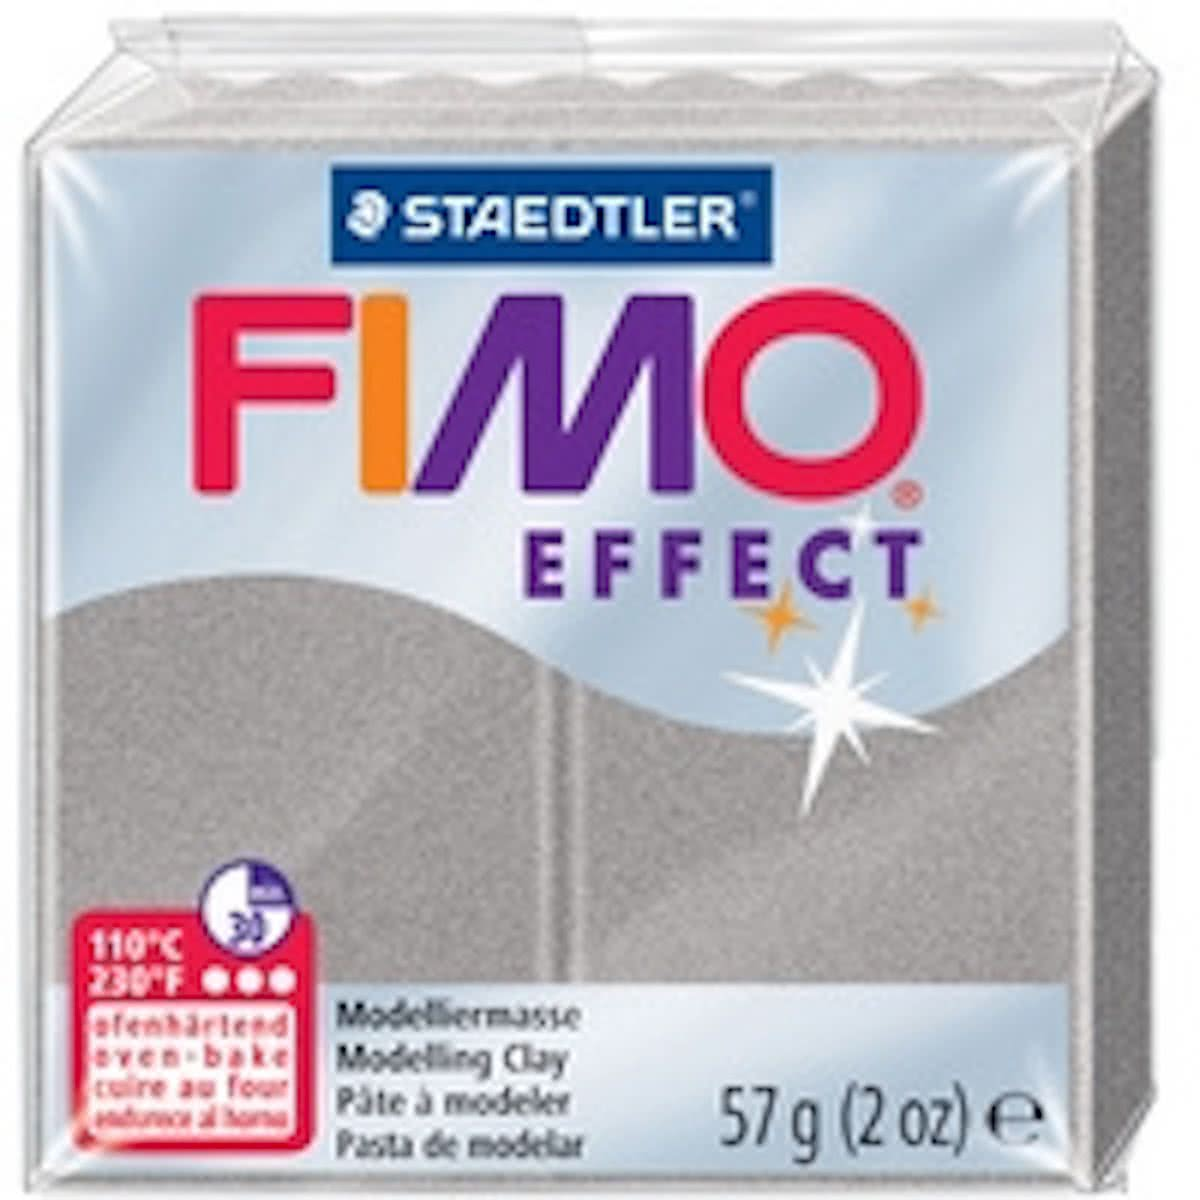 FIMO EFFECT modellering, ovendroging, licht zilver, 57 g